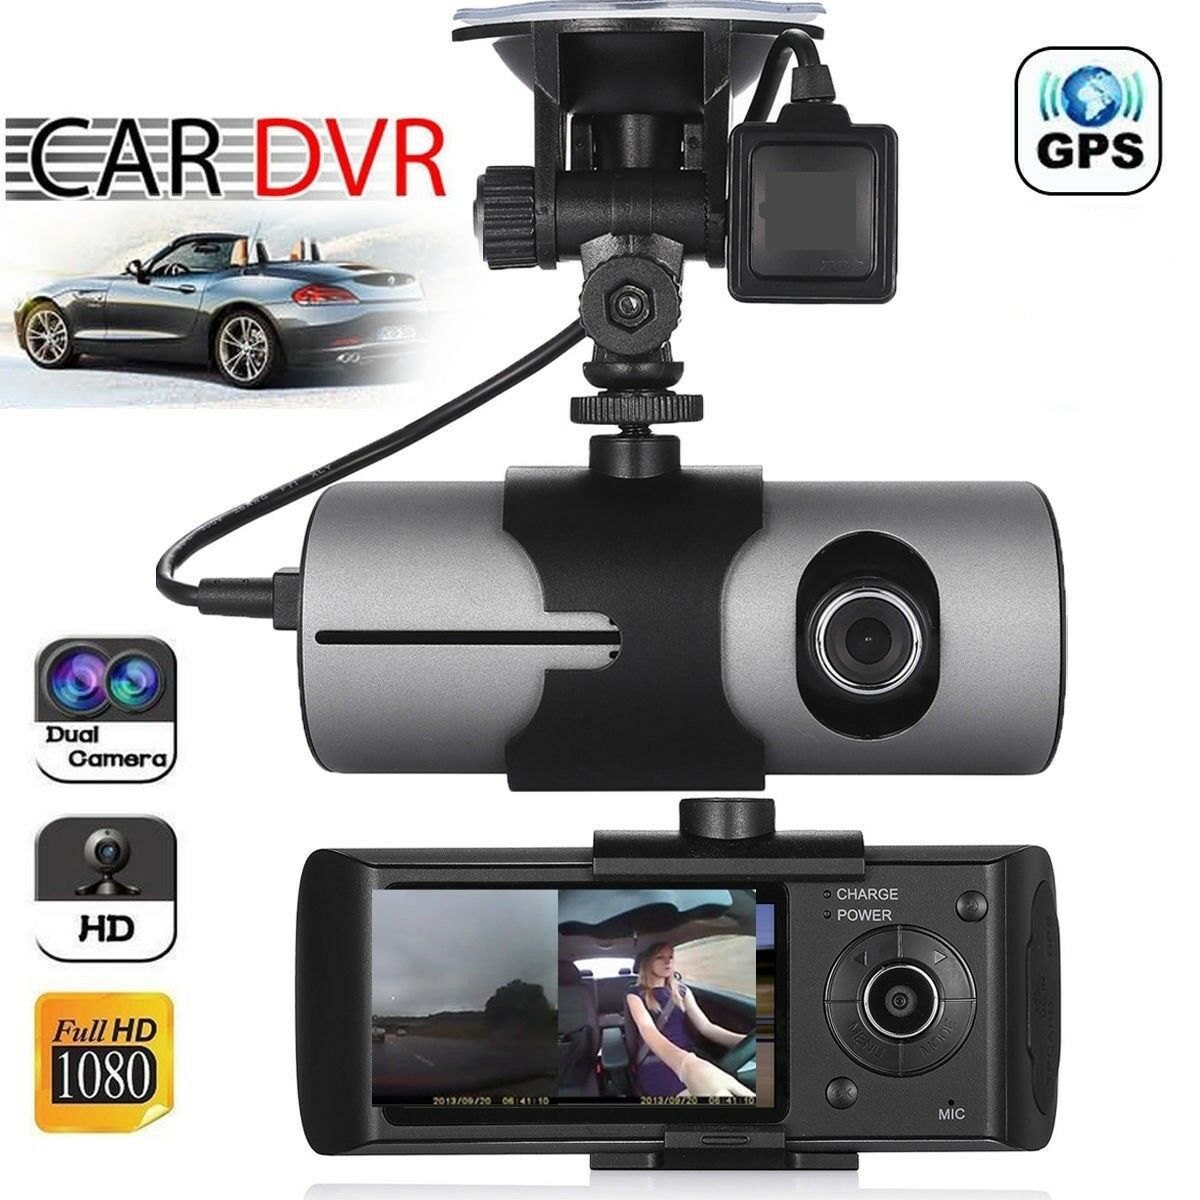 s-l1600 Dual Lens GPS Car DVR Camera HD Dash Cam Video Recorder G-Sensor w/ Night Vision